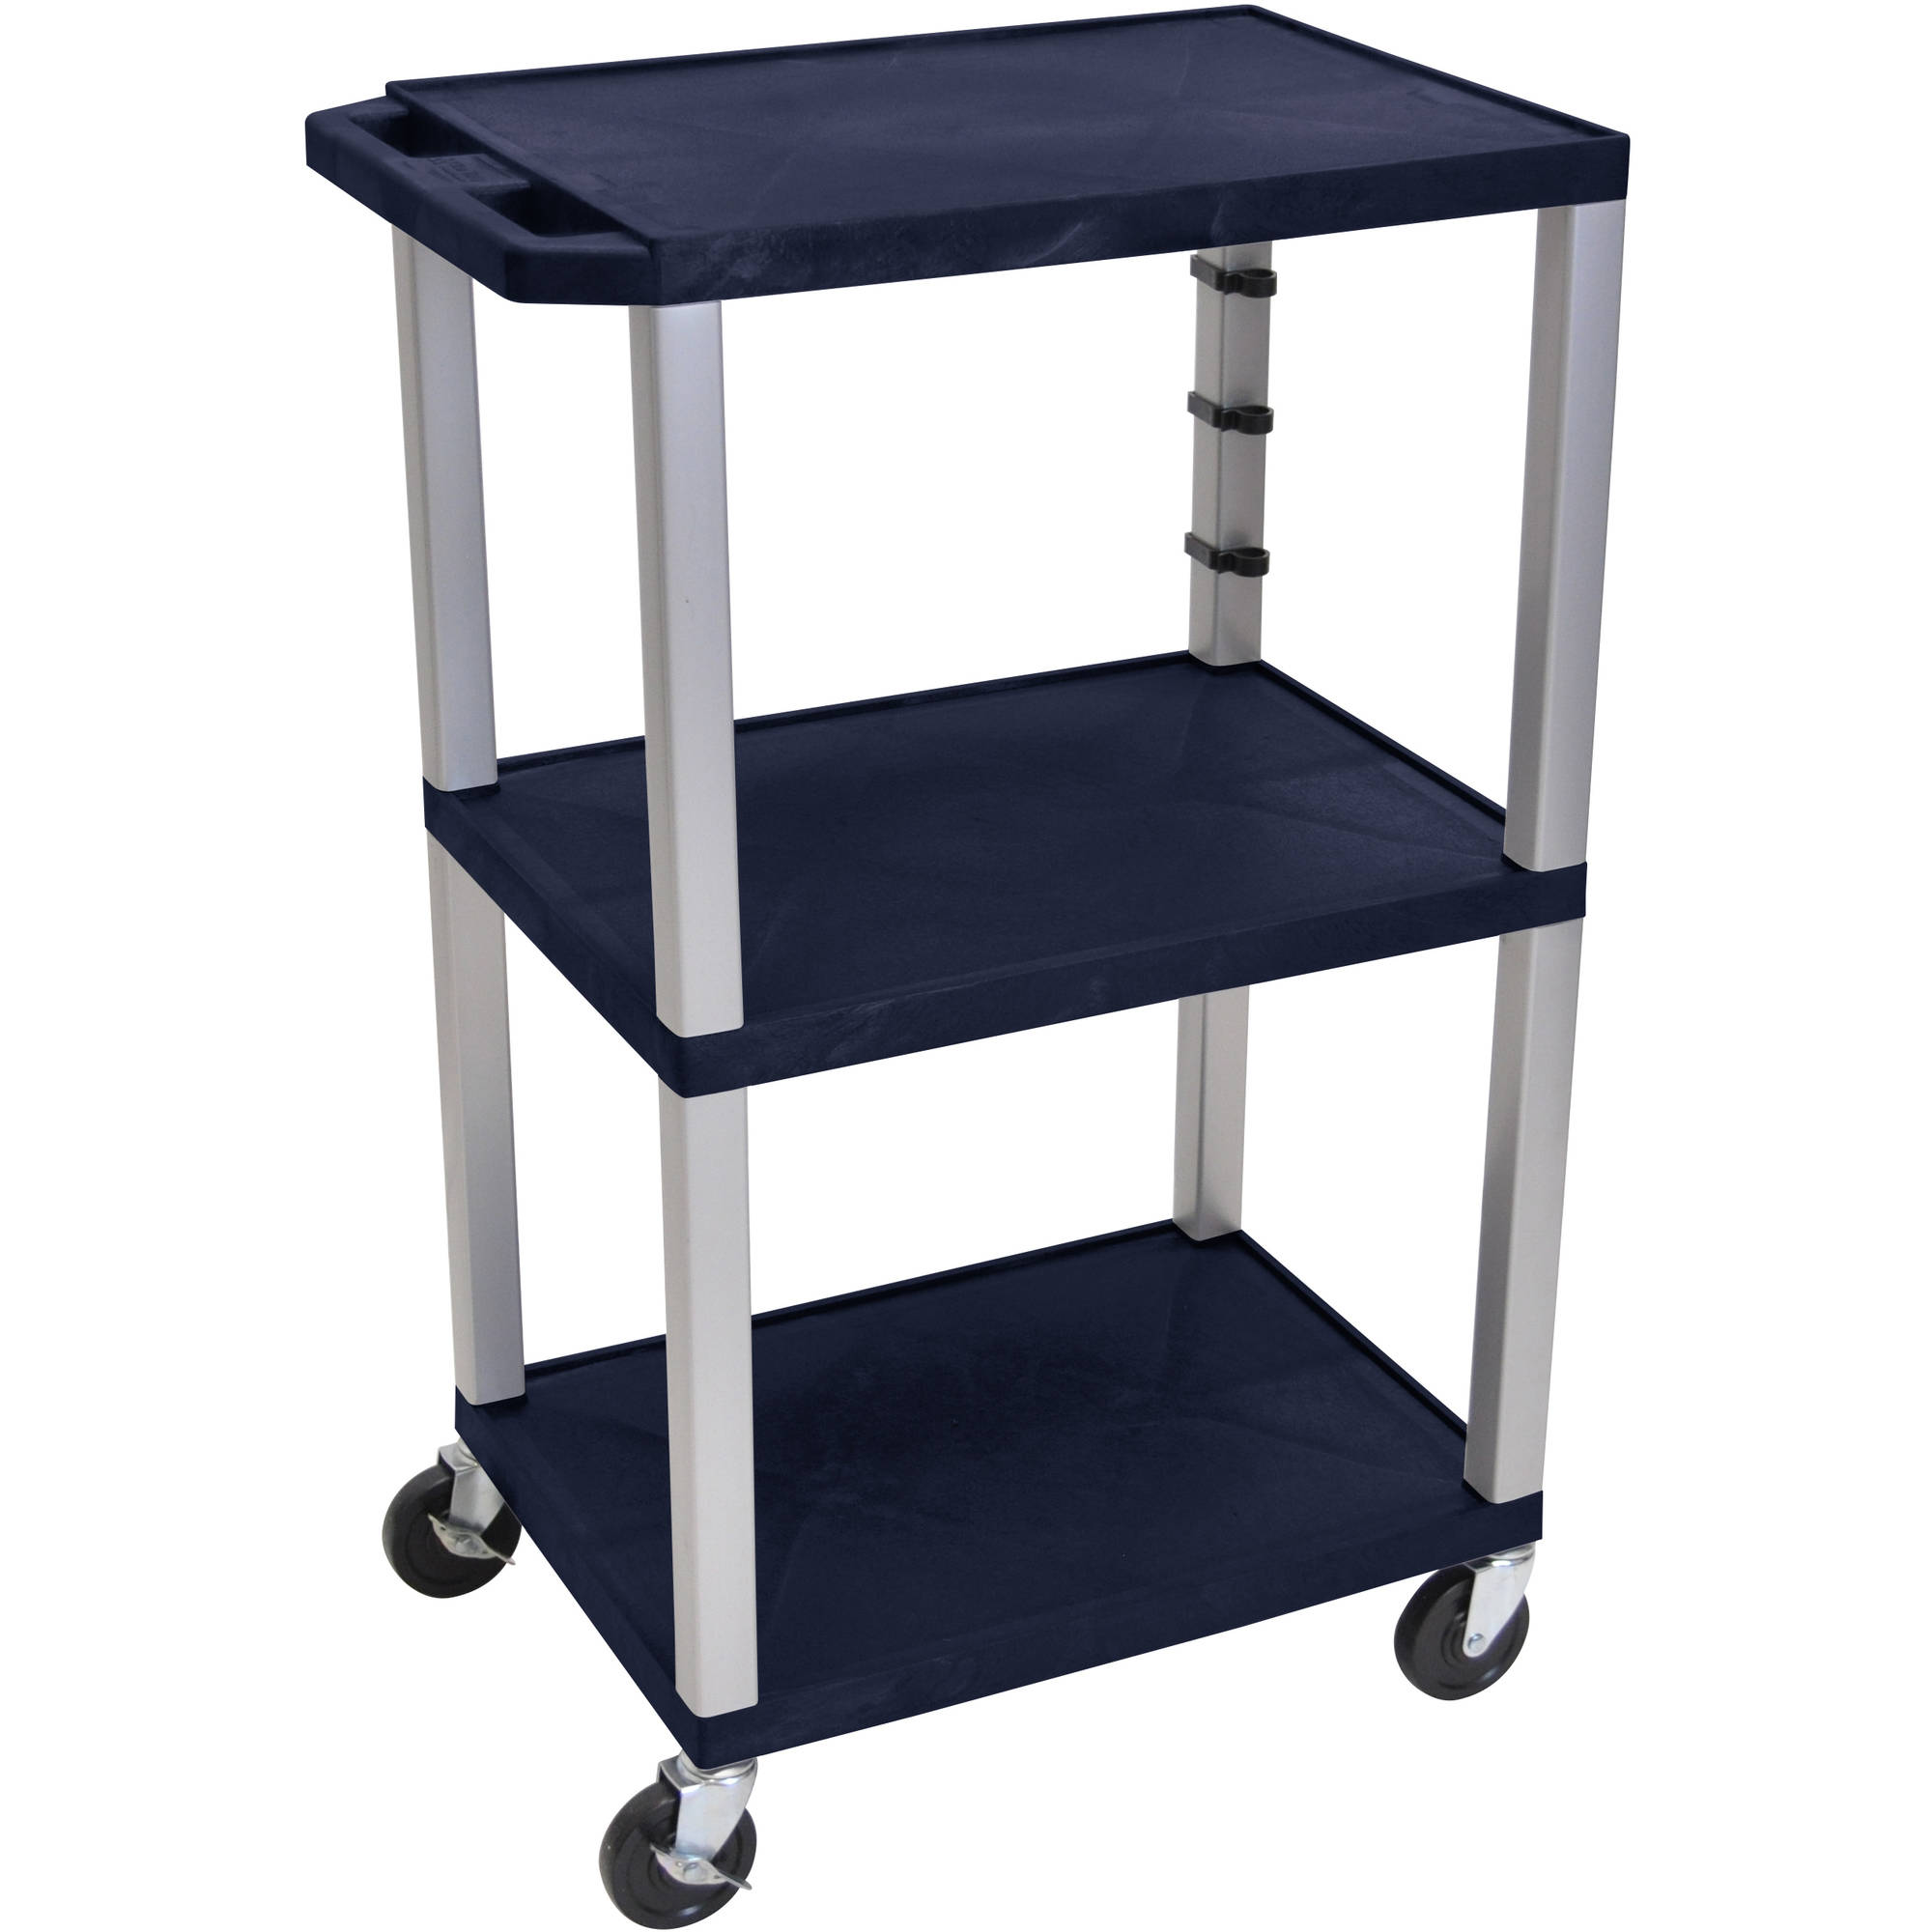 H. Wilson Tuffy 3-Shelf A/V Cart with Electric, Navy Shelves and Nickel Legs